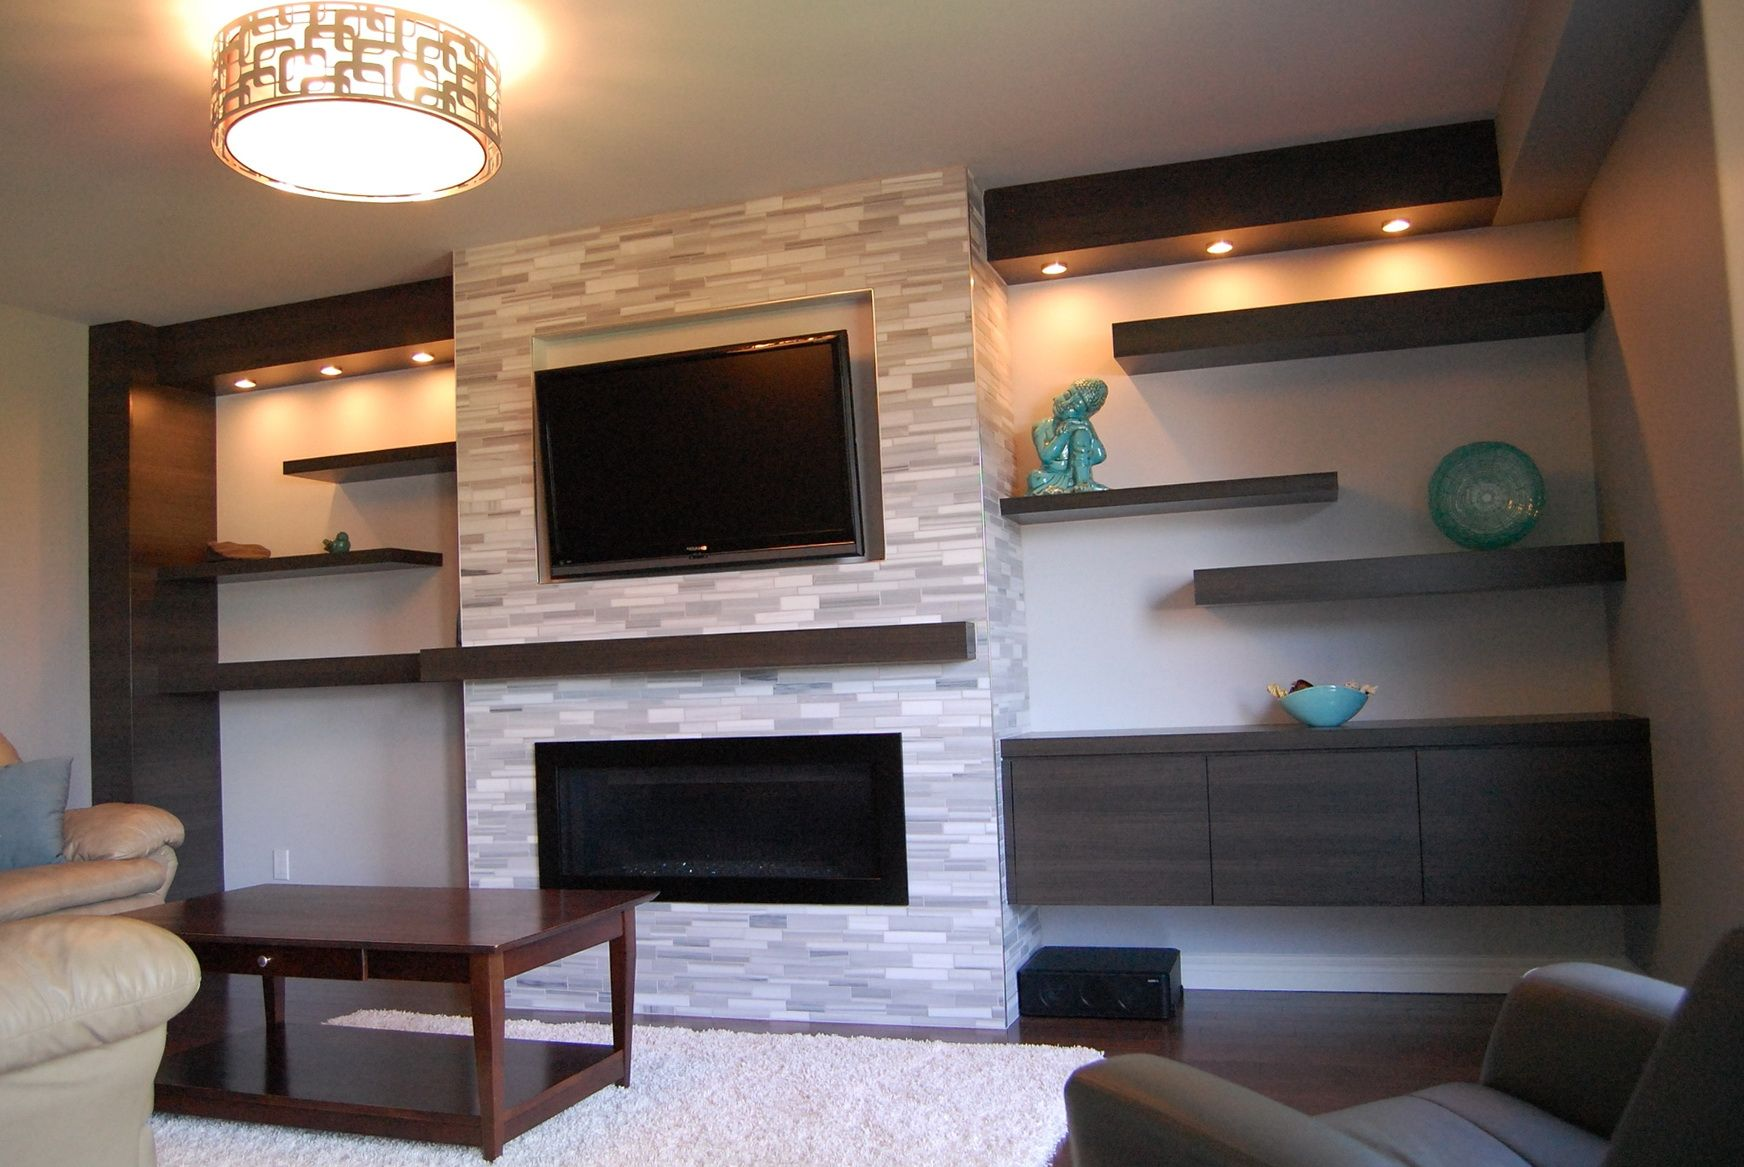 Wall Mounted Tv Setup Ideas Wall Mounted Fireplace And Floating Cabinet And Shelves